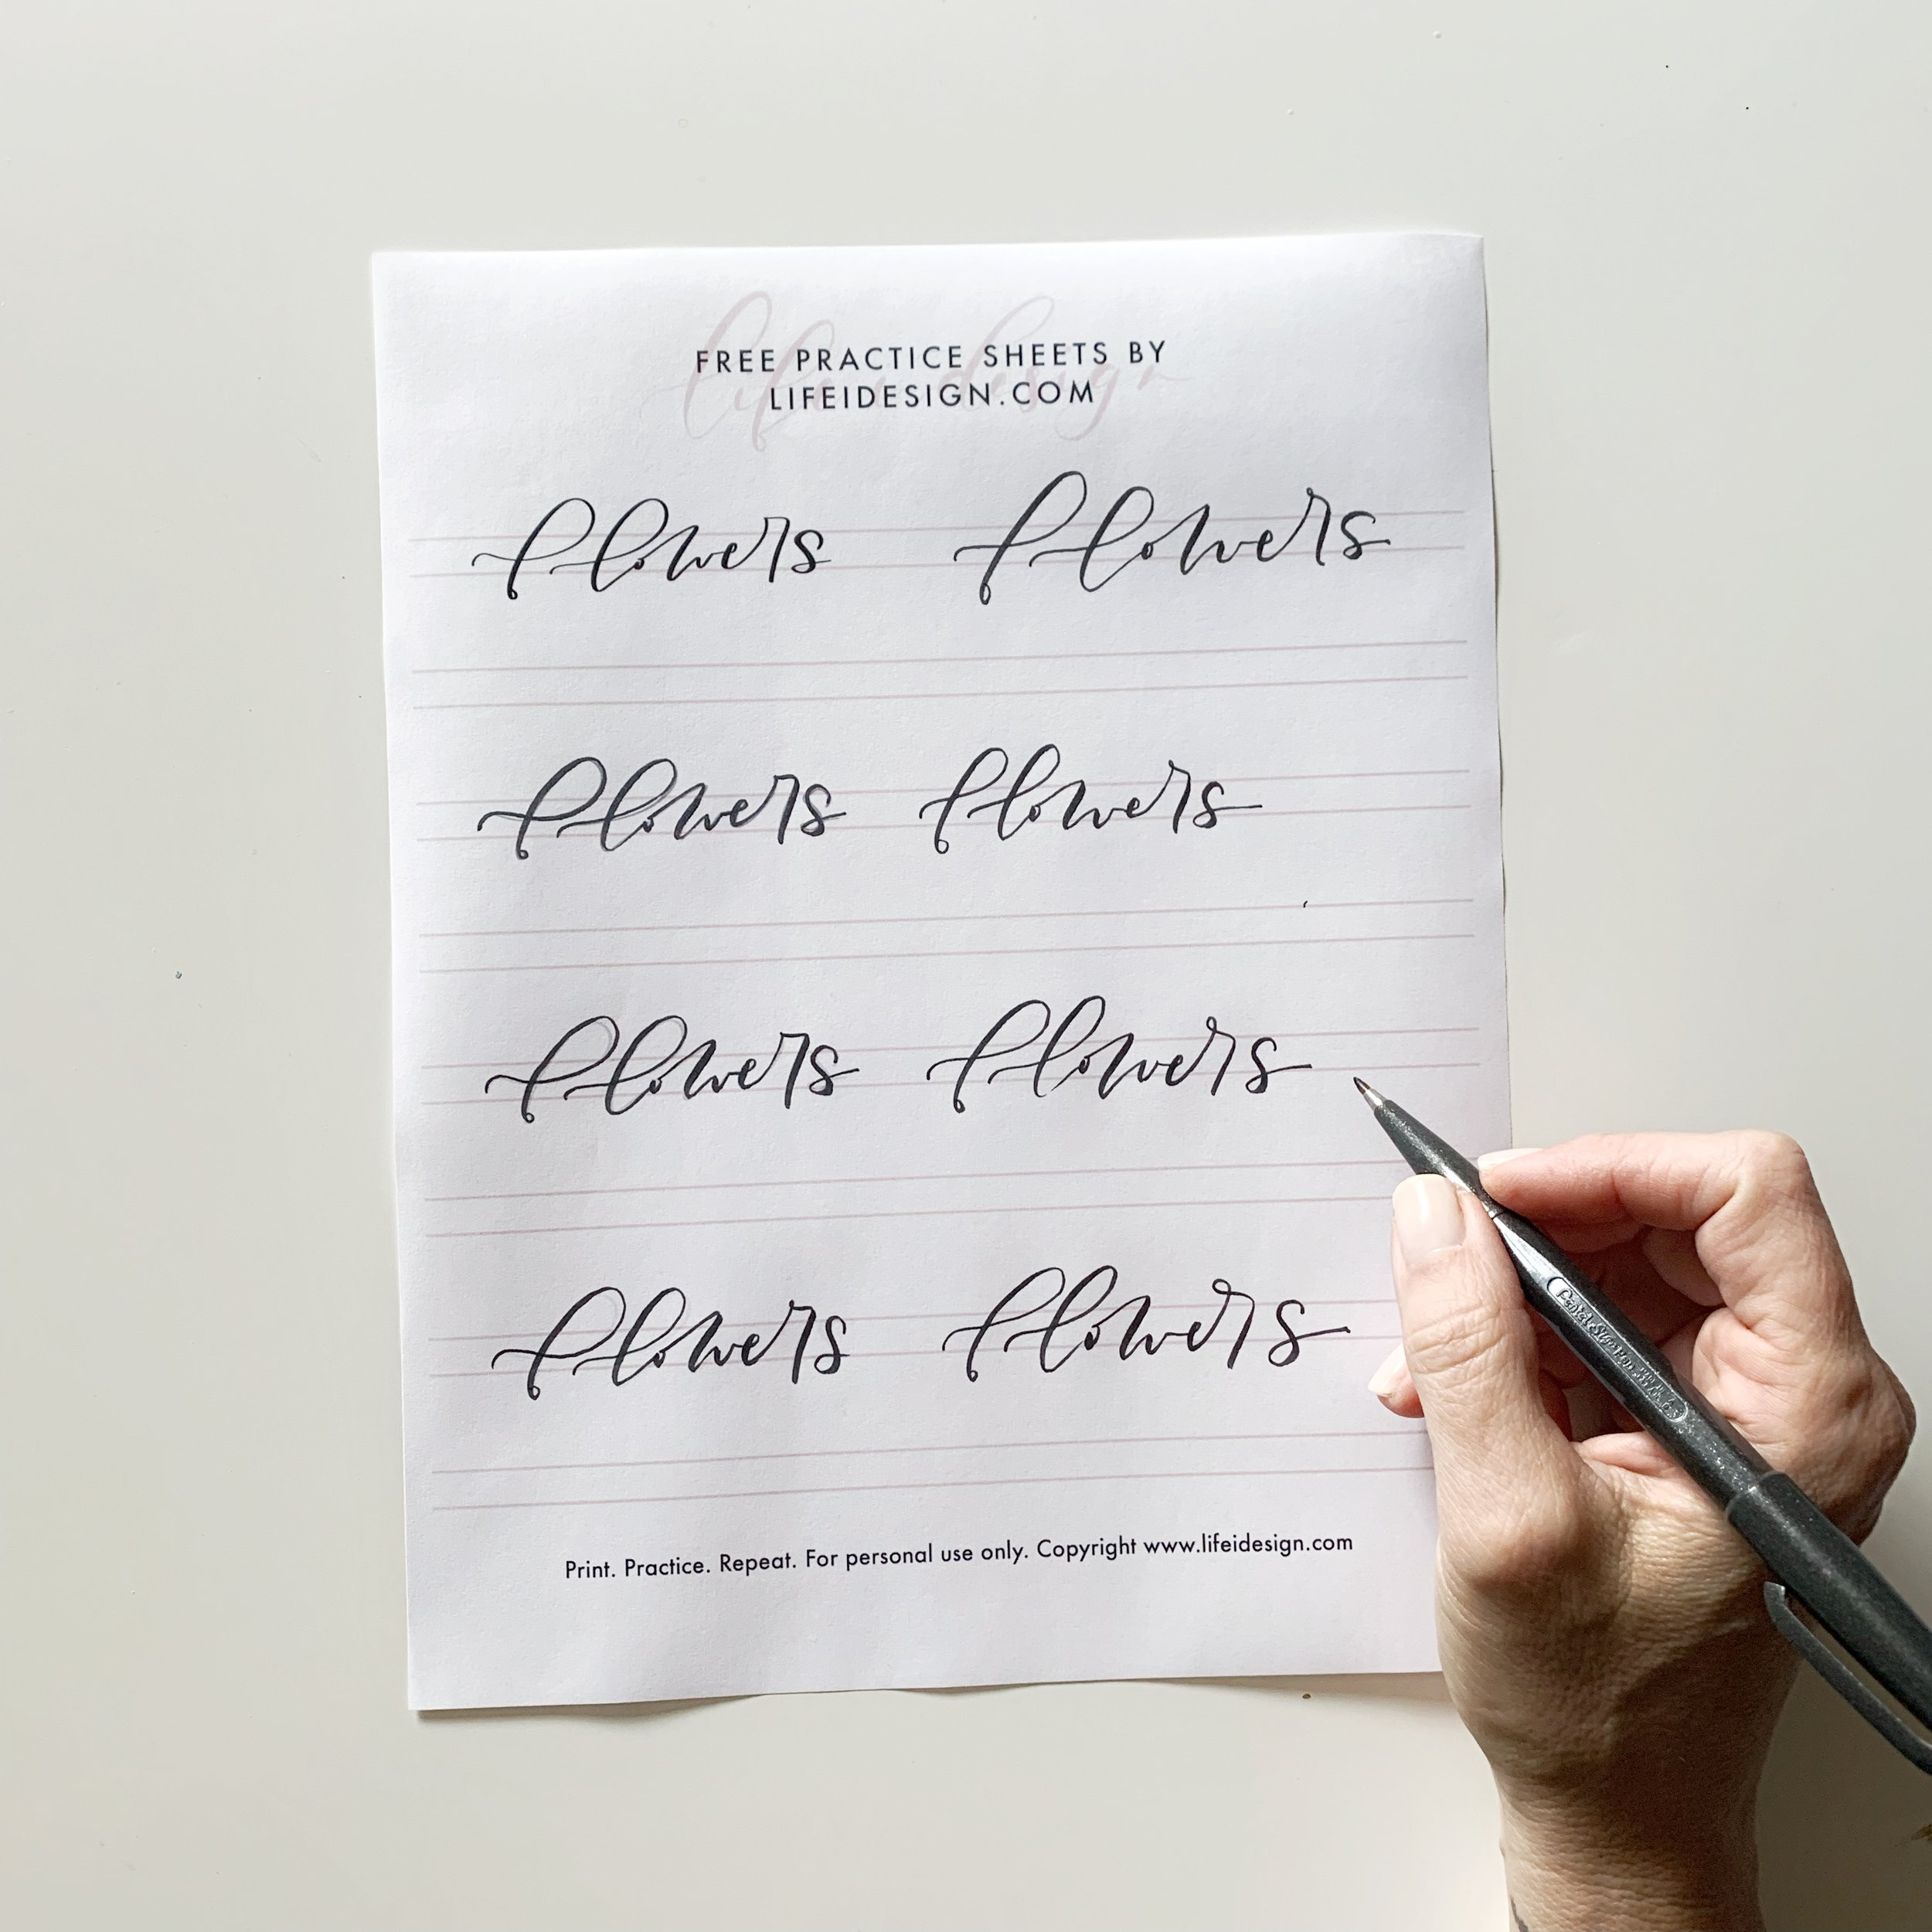 Get access to this practice sheet and more when you join the FREE Creative Library!